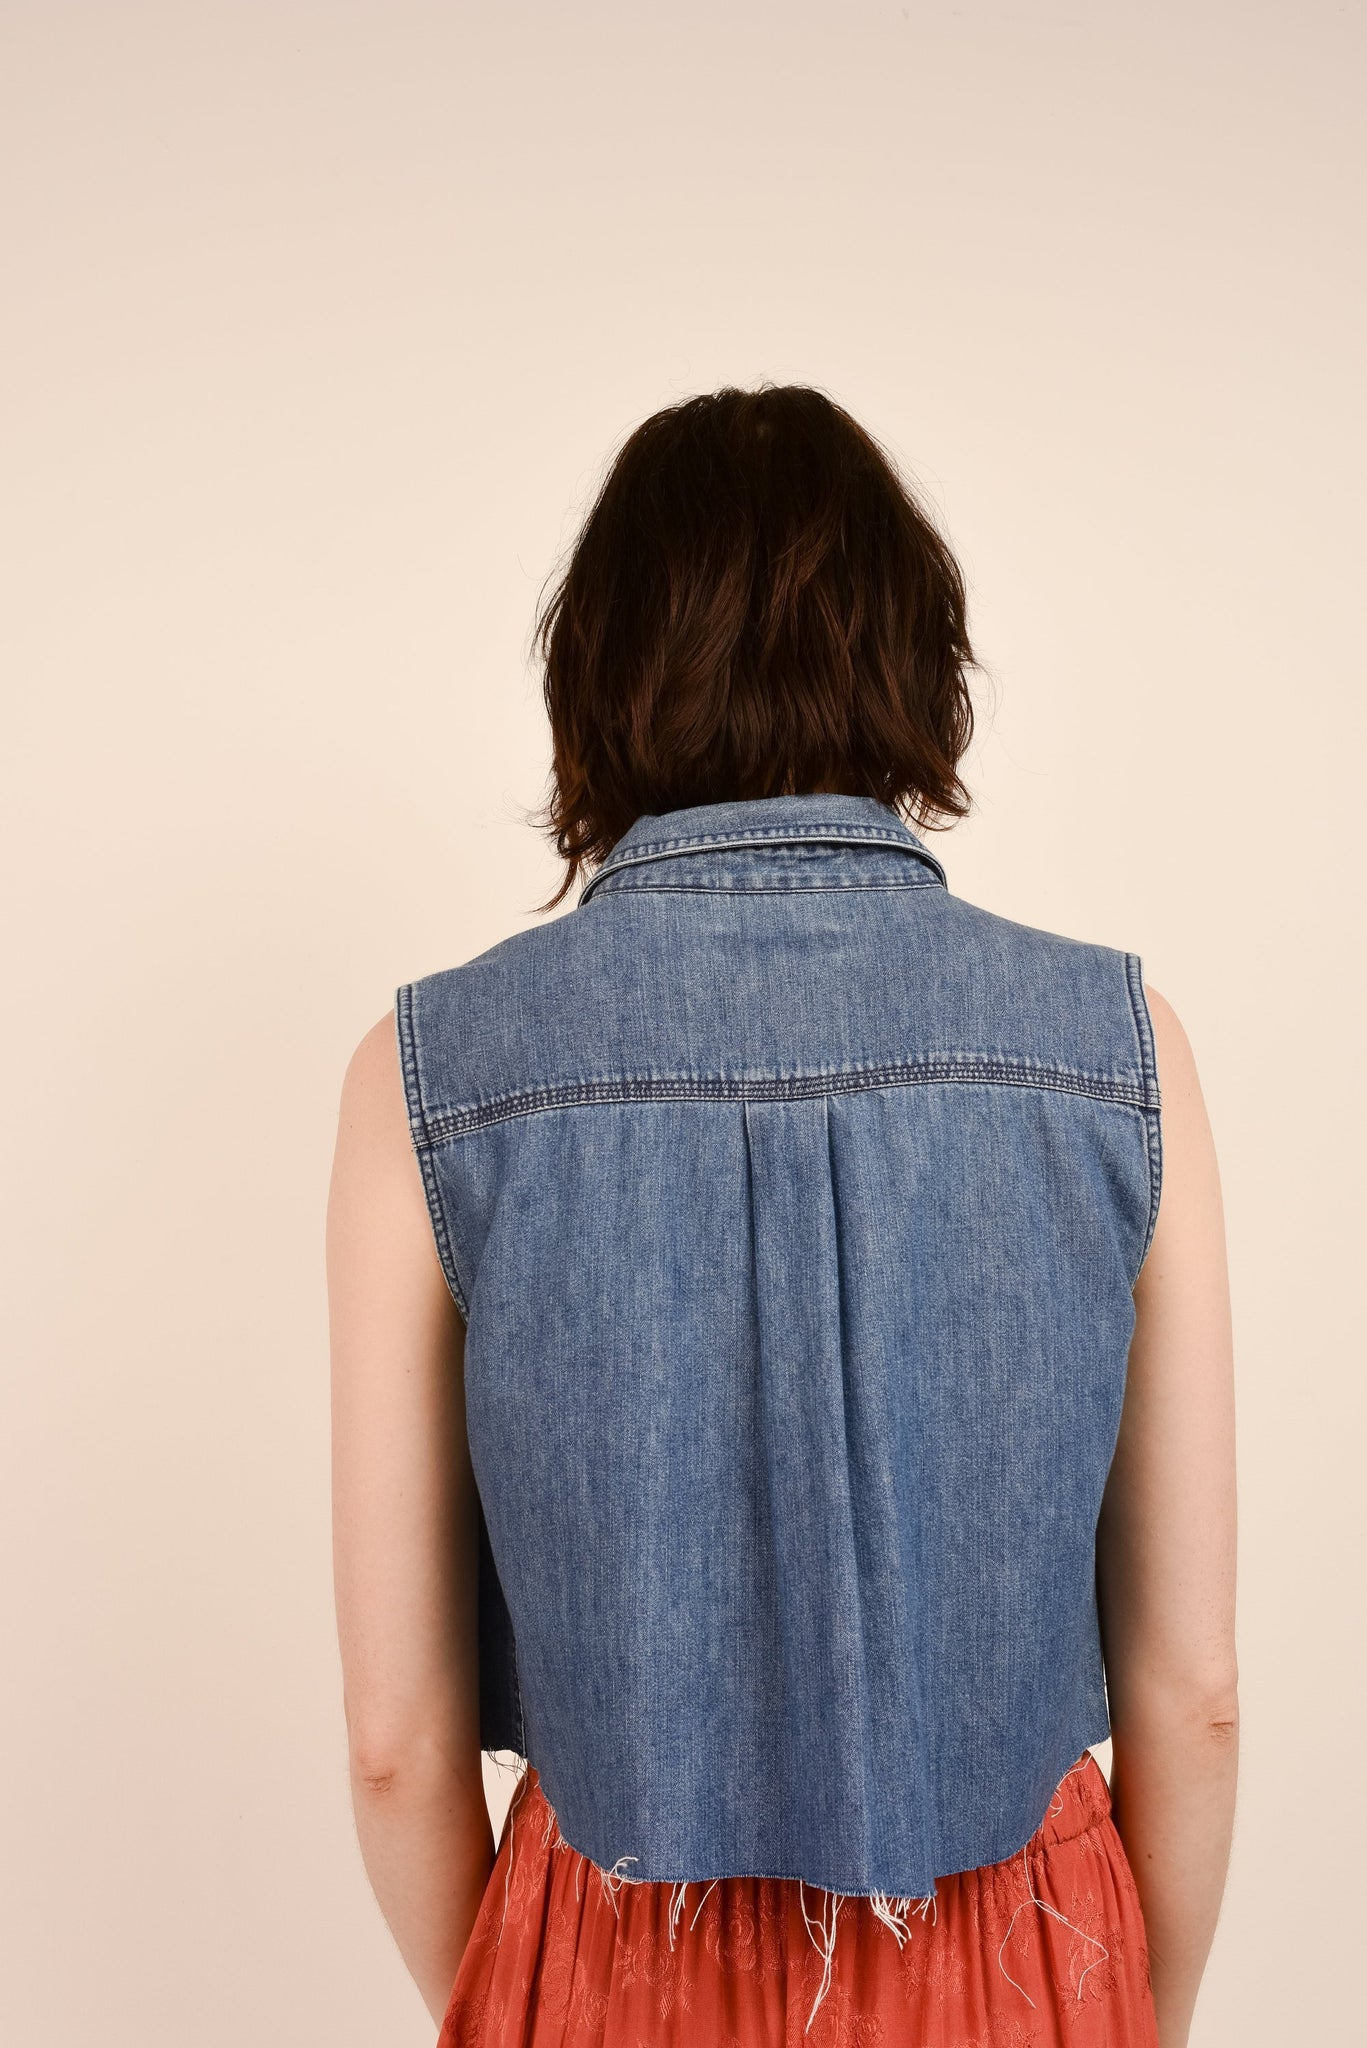 Vintage Denim Blue Sleeveless Cropped Top / S - Closed Caption